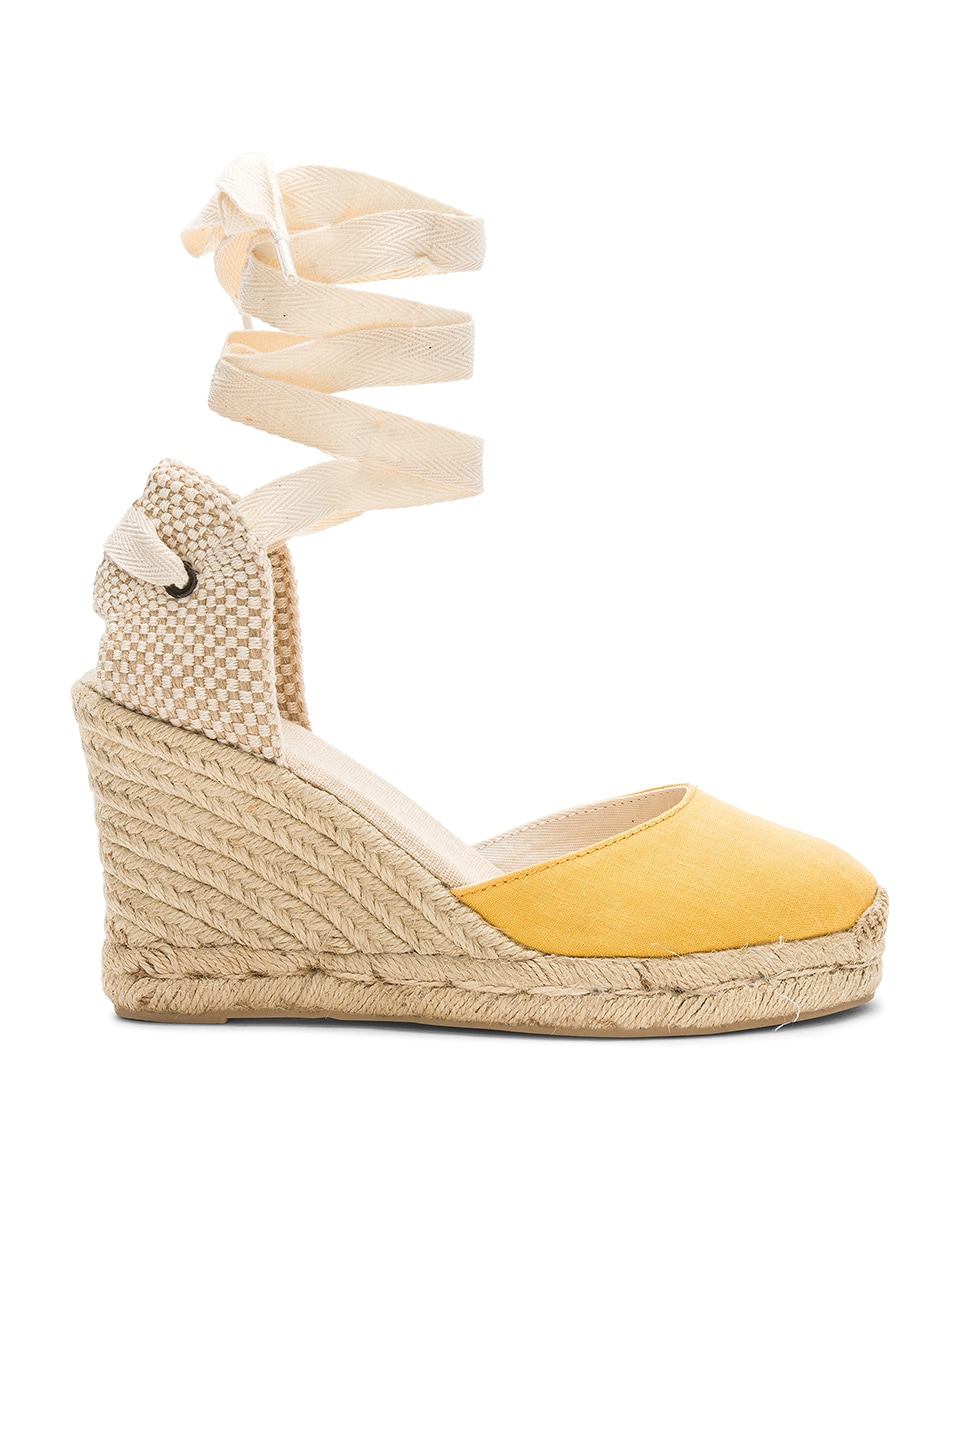 Soludos Tall Wedge in Marigold